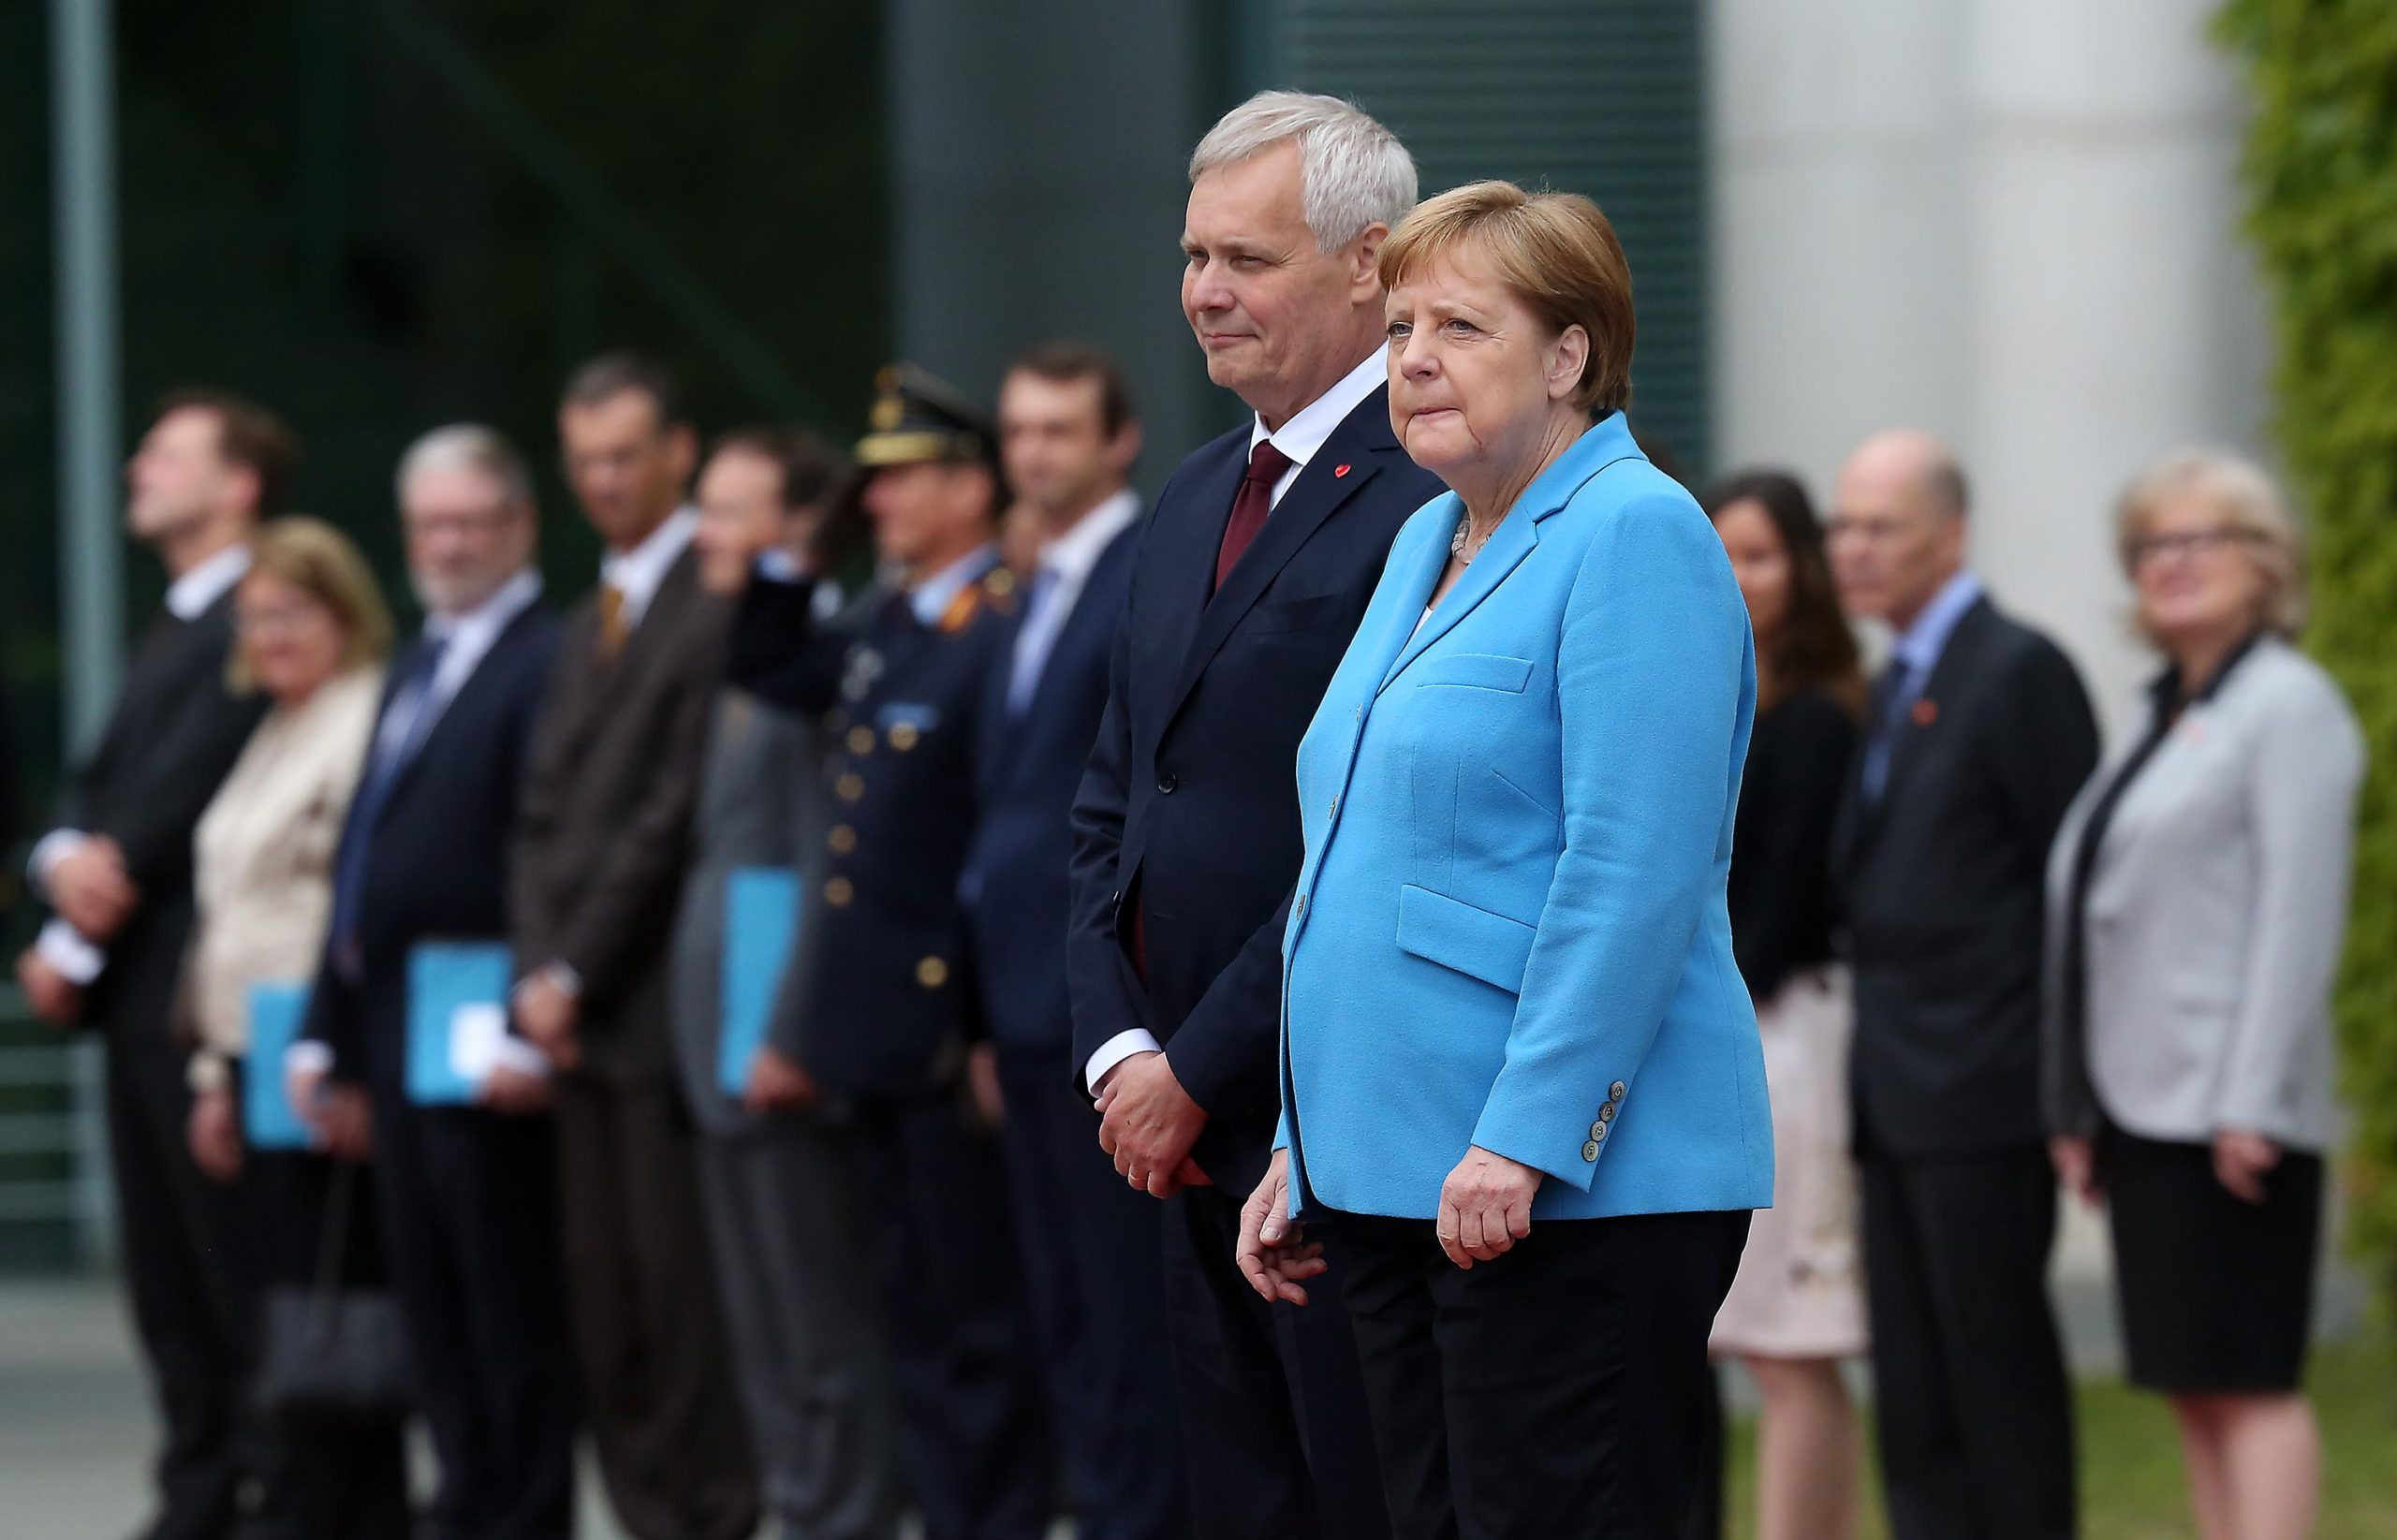 New Finnish Prime Minister Antti Rinne Visits Berlin